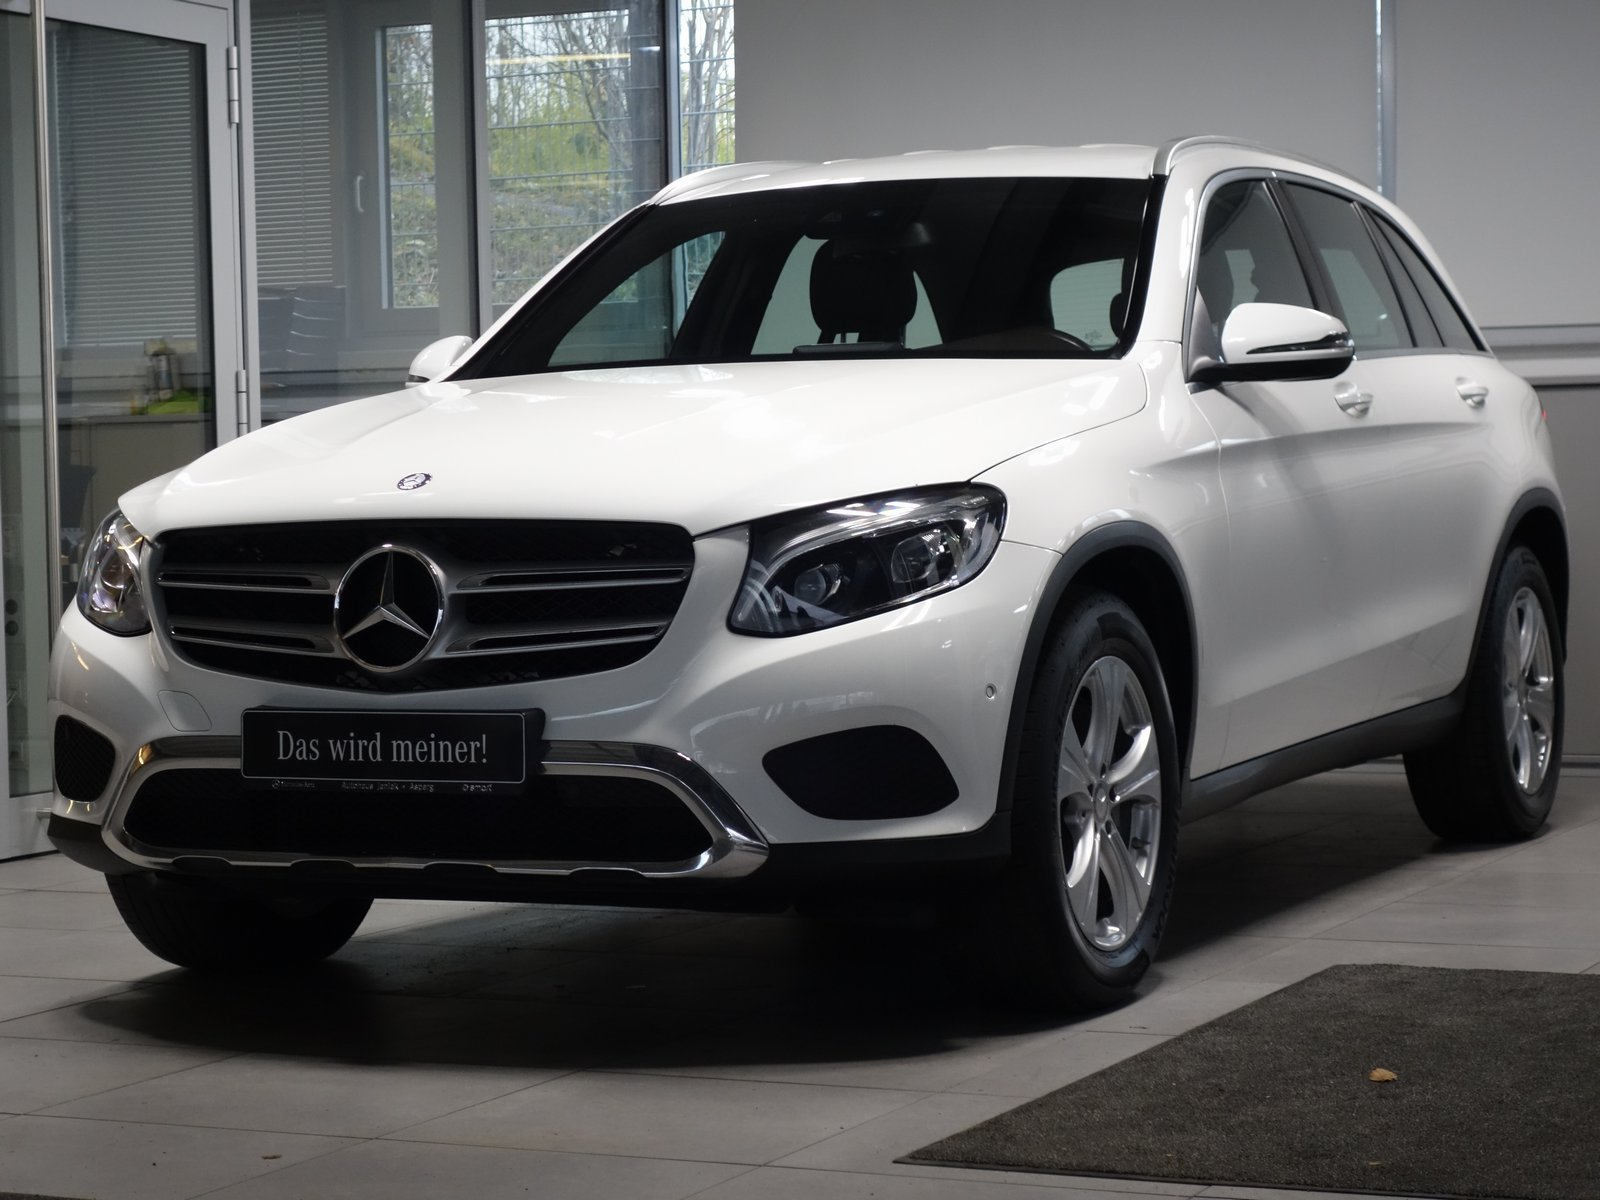 Mercedes-Benz GLC 250d 4M Exclusive|Comand|LED ILS|PDC|Klima, Jahr 2015, Diesel